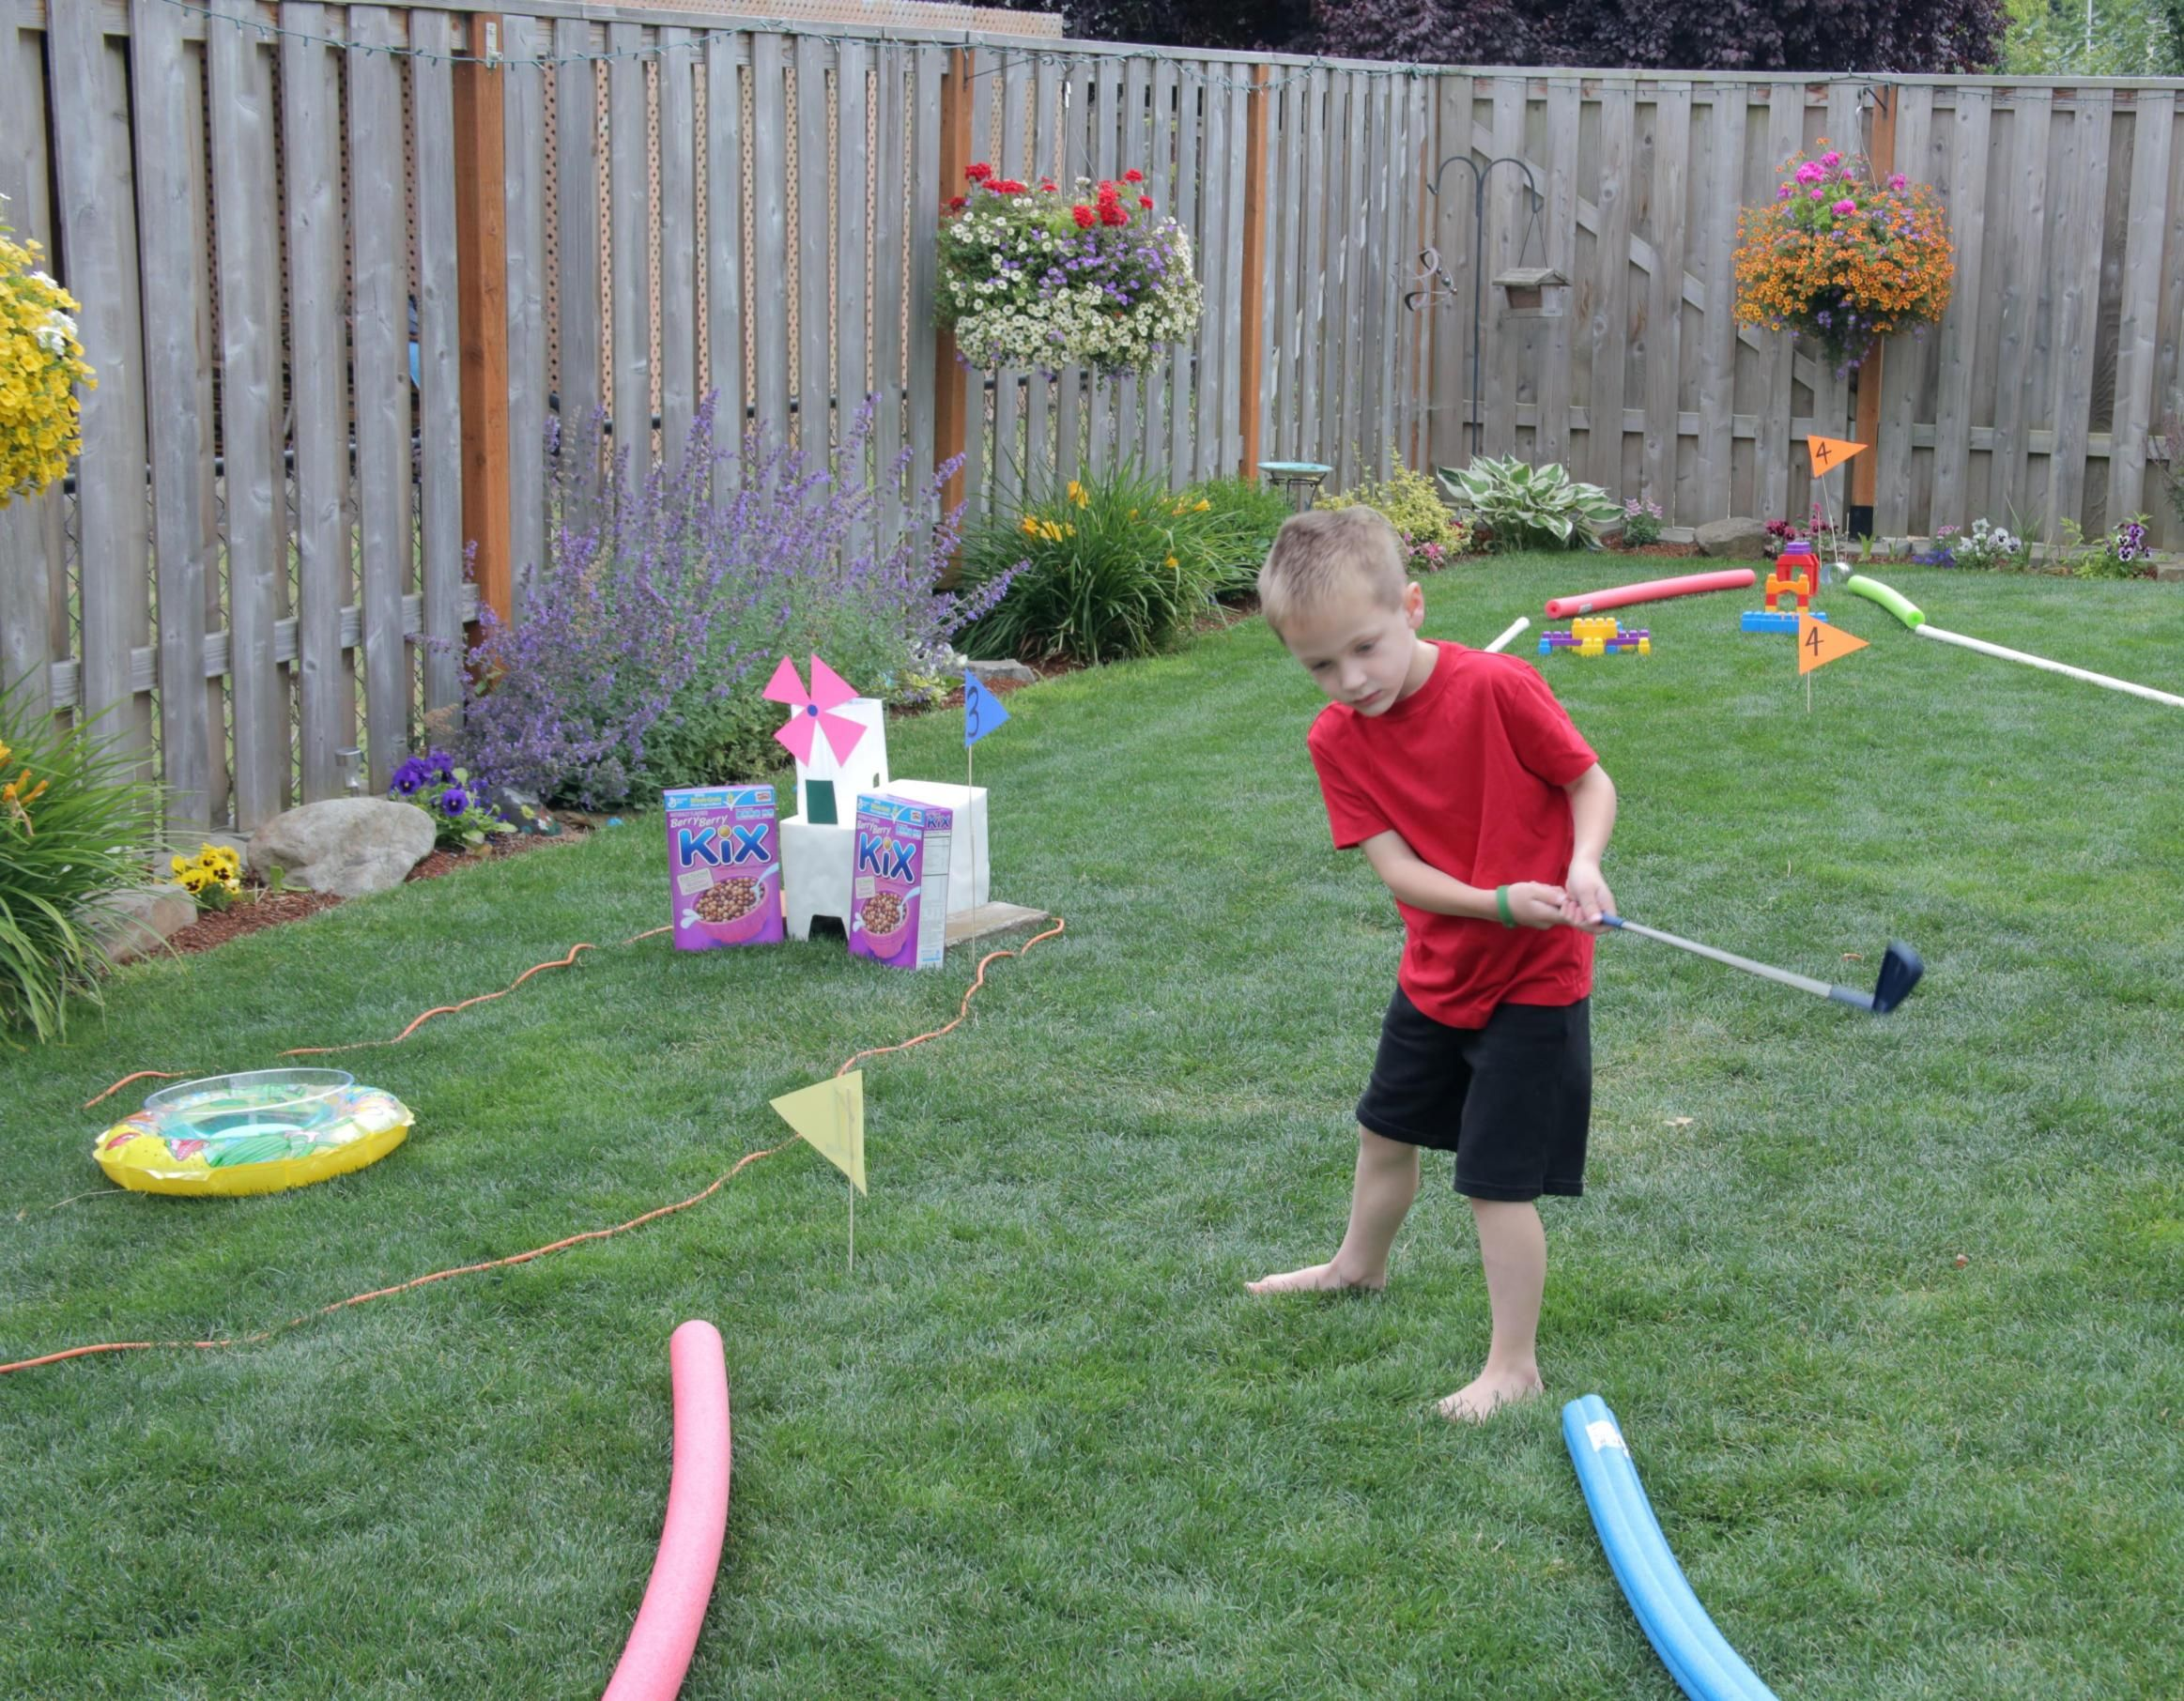 Bon Outdoor Fun: Backyard Mini Golf Course · Kix Cereal